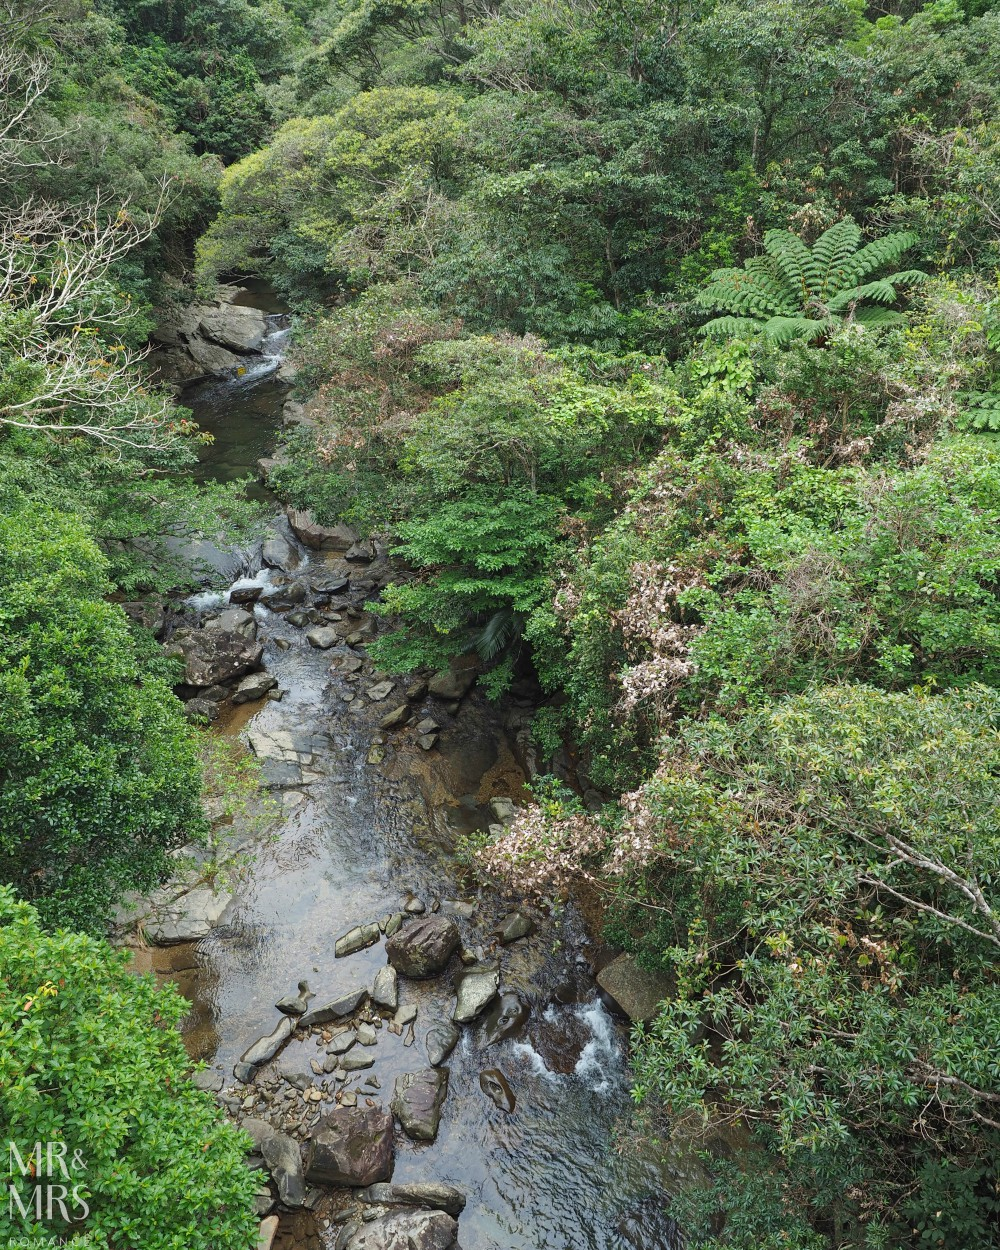 Power Spots, Okinawa, Japan - Mr & Mrs Romance - Hiji Waterfall river from above